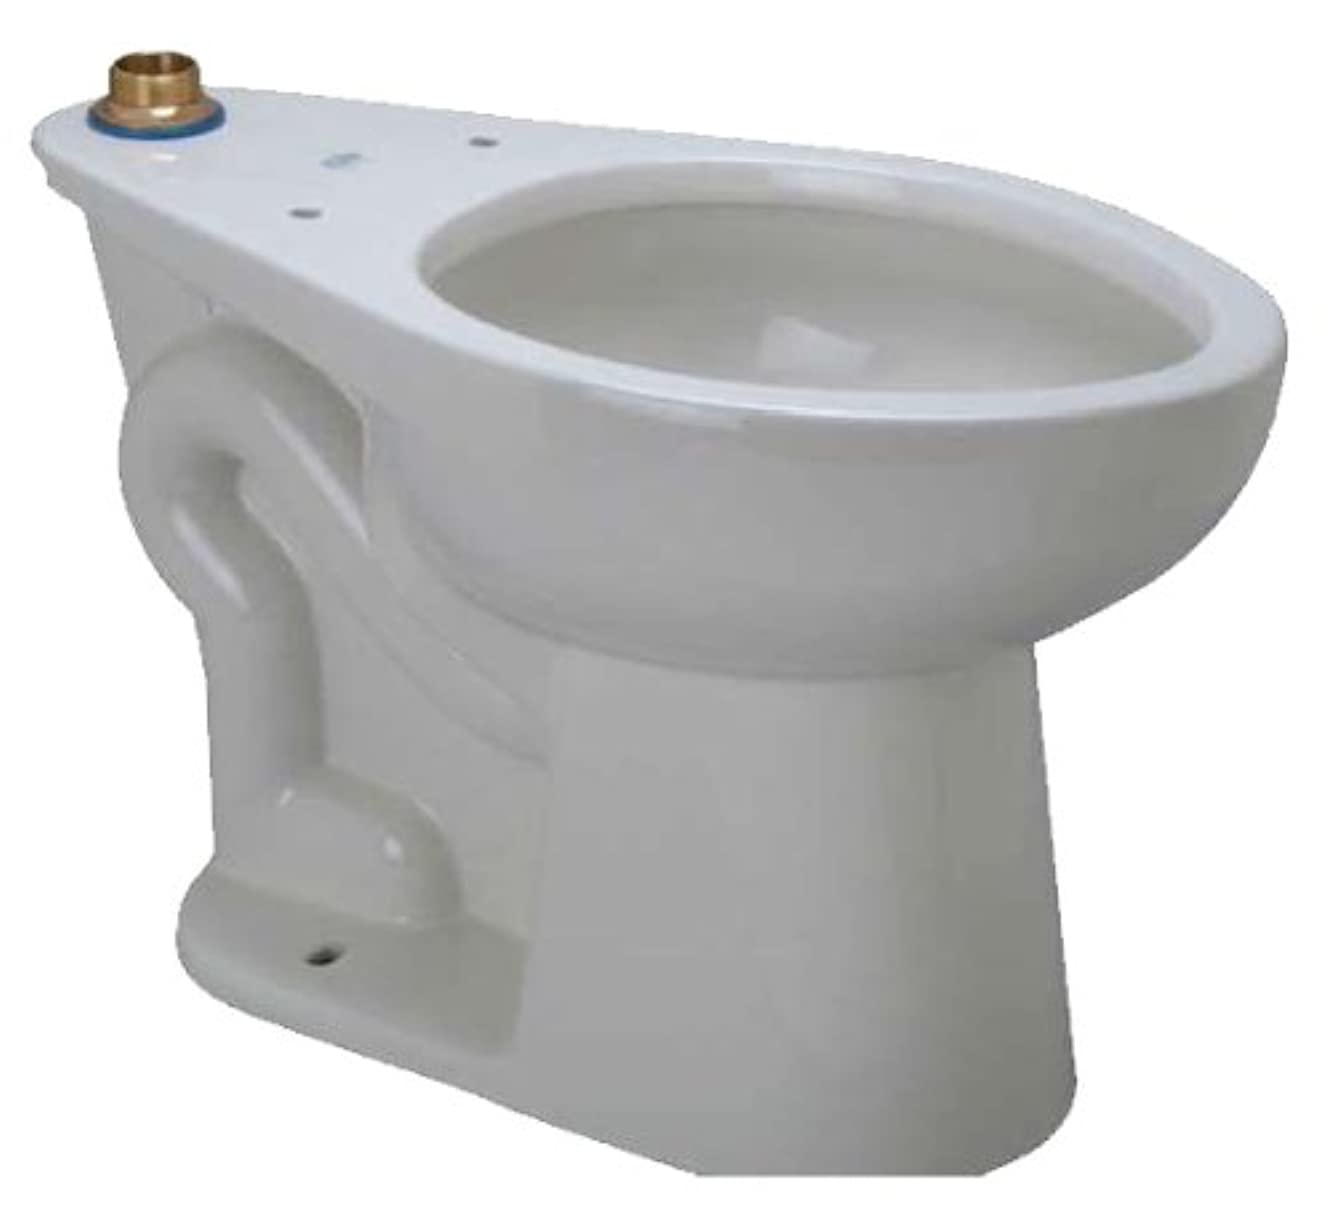 Zurn Z5655 BWL One Piece Elongated Toilet Bowl Only from the EcoVantage Collecti, White